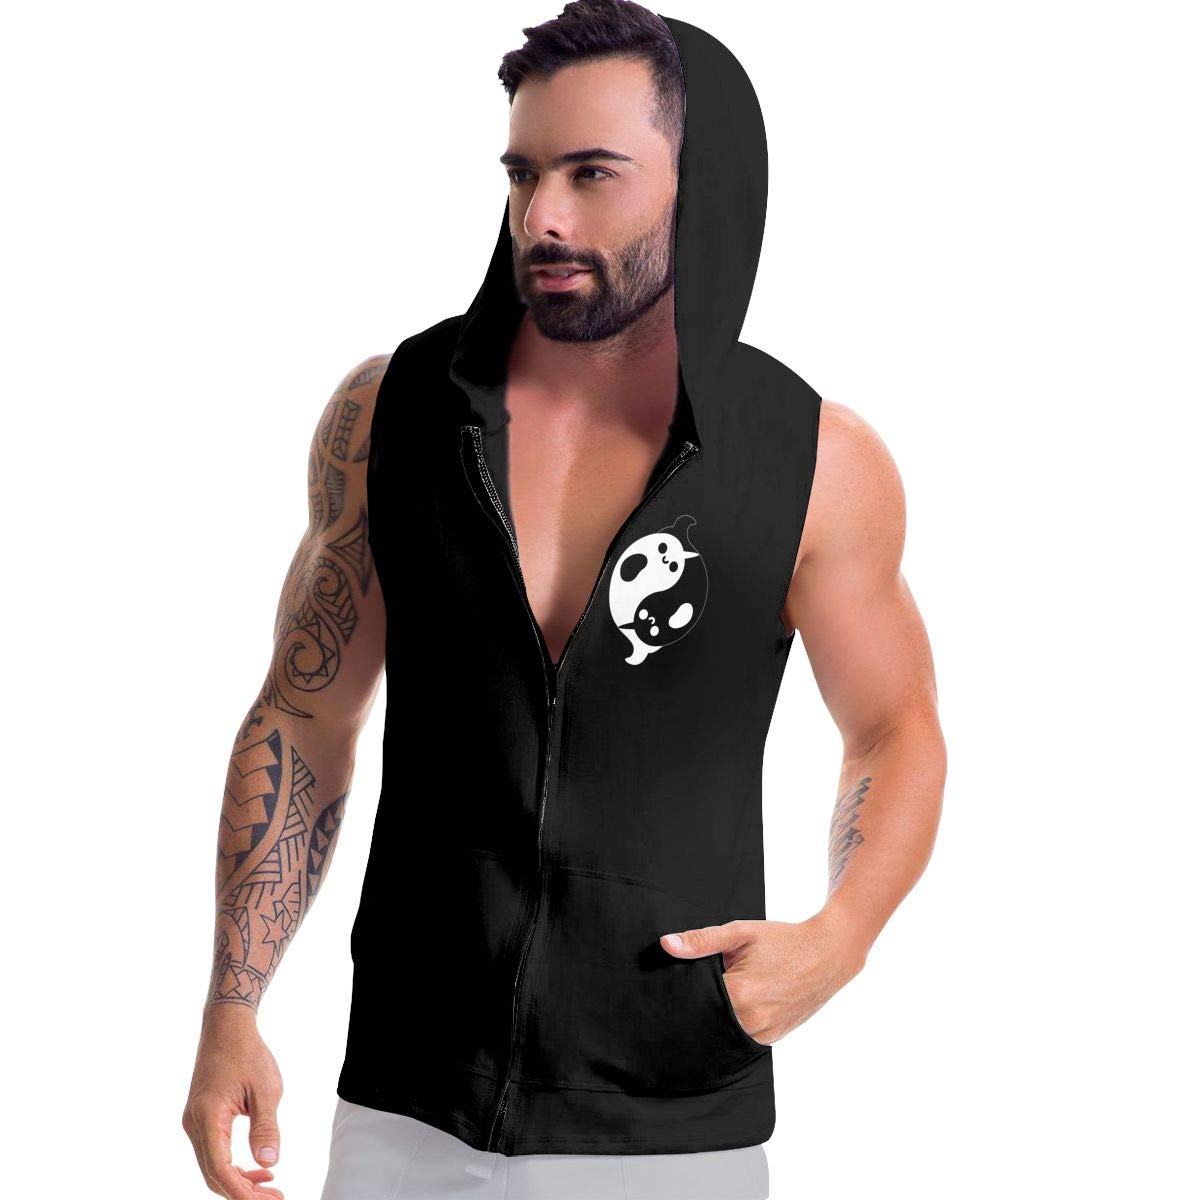 Yin Yang Narwhals-3 Mens Sleeveless Zipper Hoodie Sweatshirt Bodybuilding Tank Top